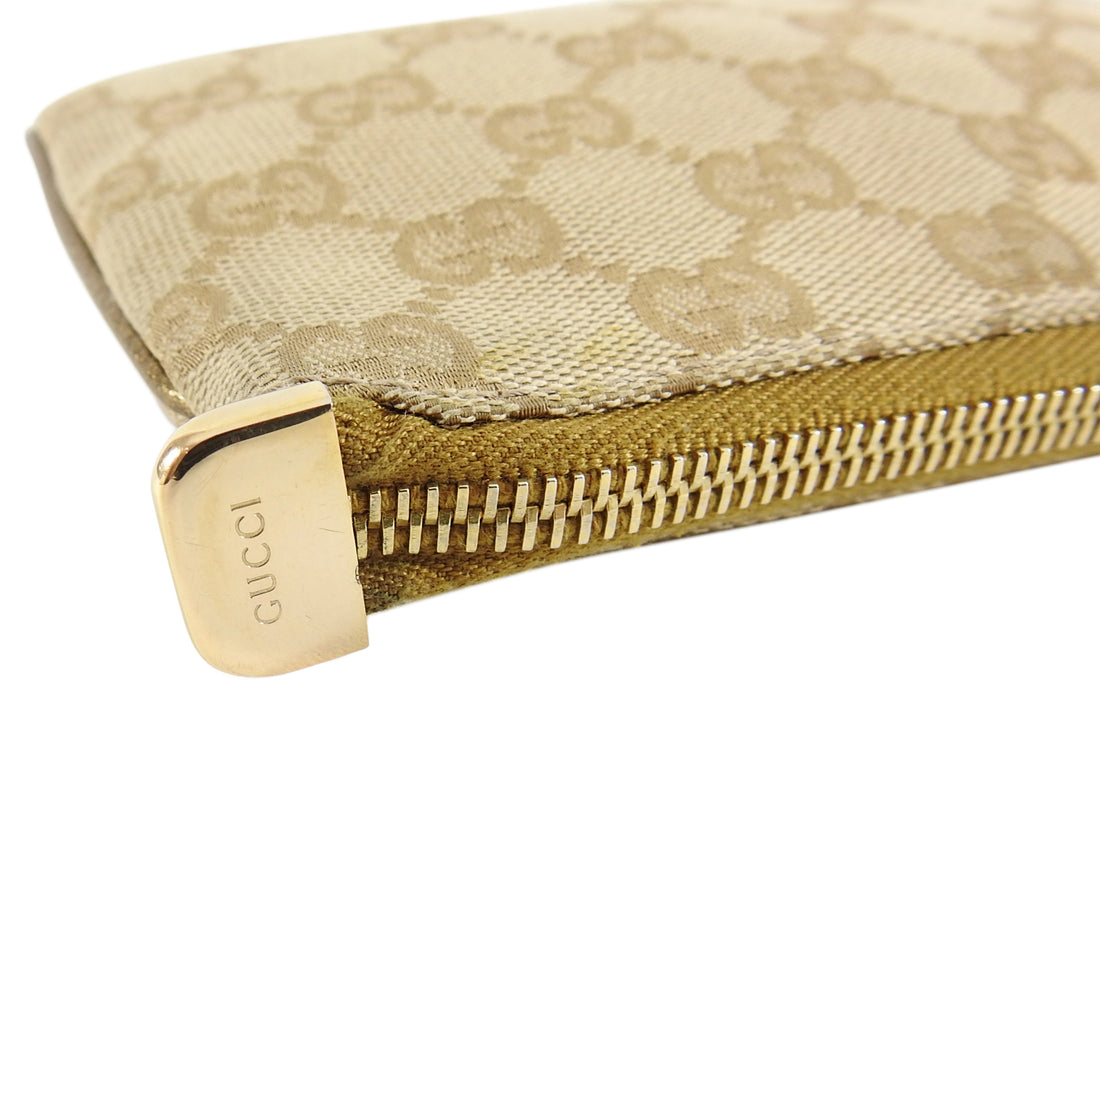 Gucci Gold Monogram Canvas Small Wristlet Pouch Bag